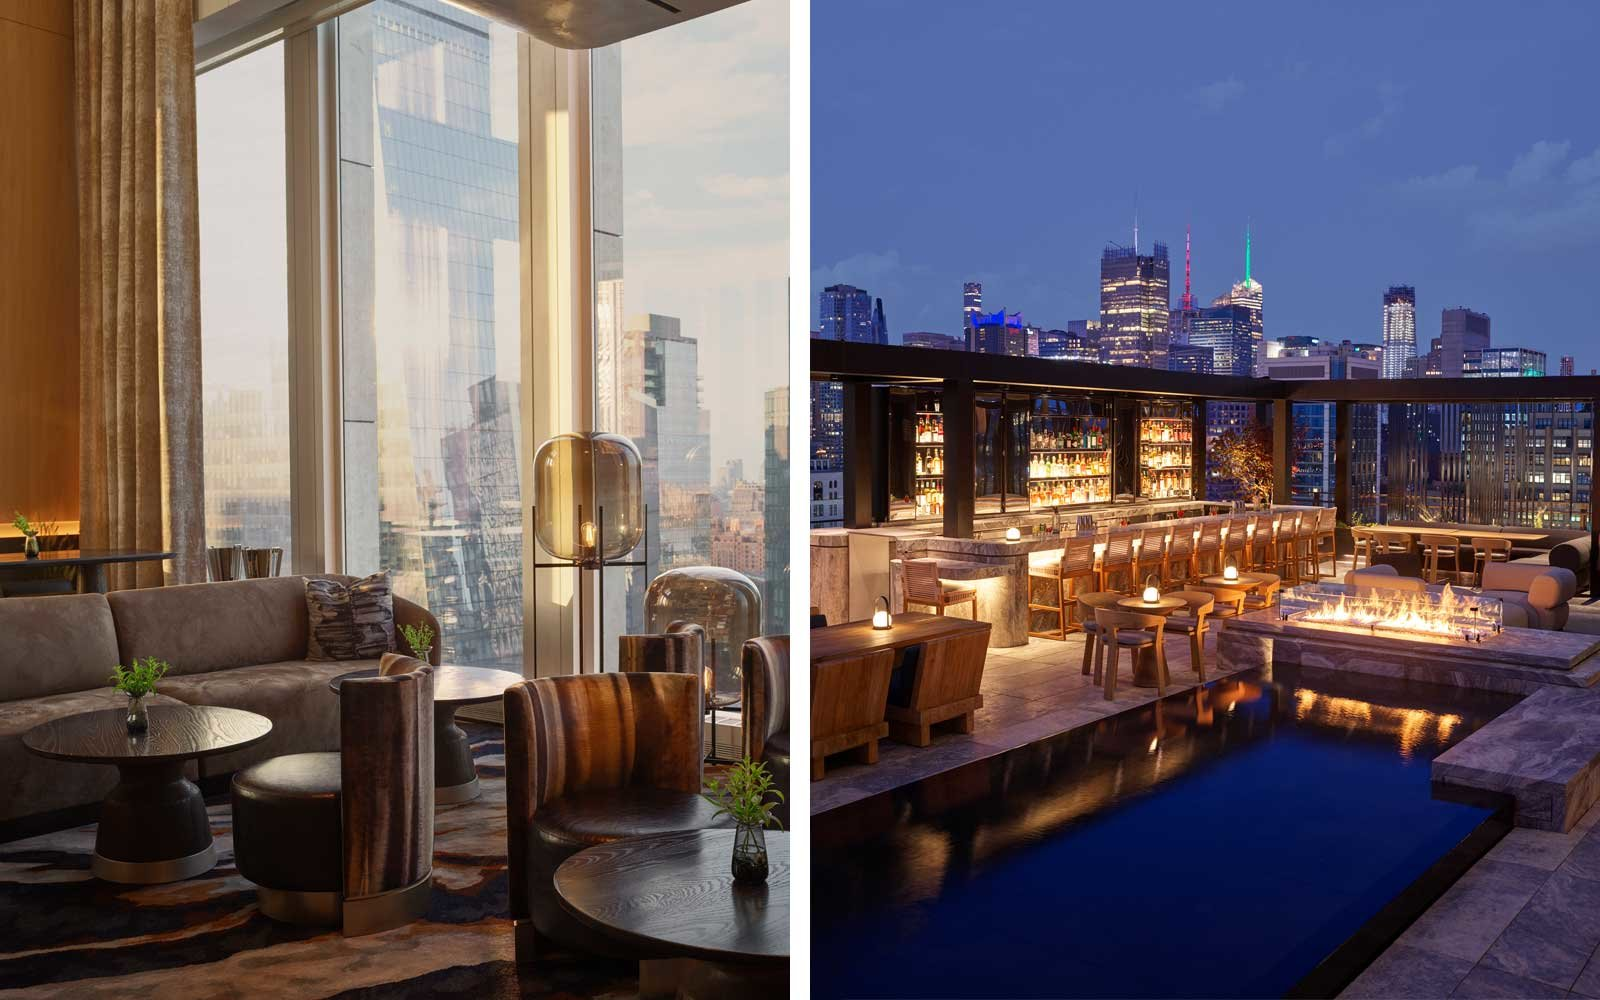 Equinox Hotel, New York City